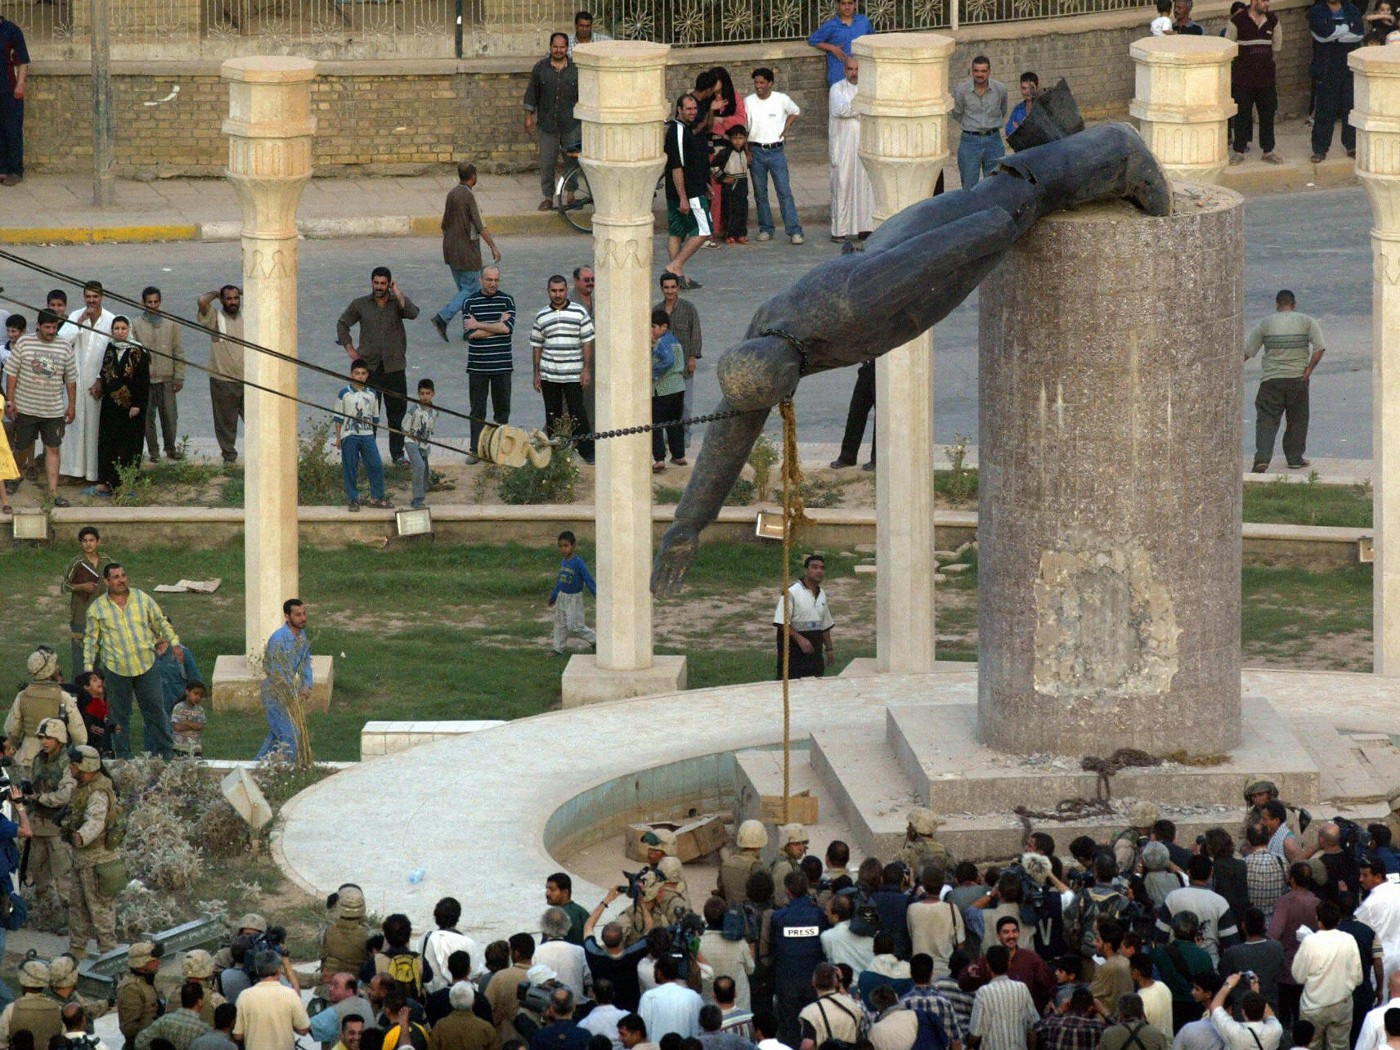 Statue of Iraqi President Saddam Hussein being pulled down in Baghdad's al-Fardous square on April 9, 2003 (cred: MSNBC.com)